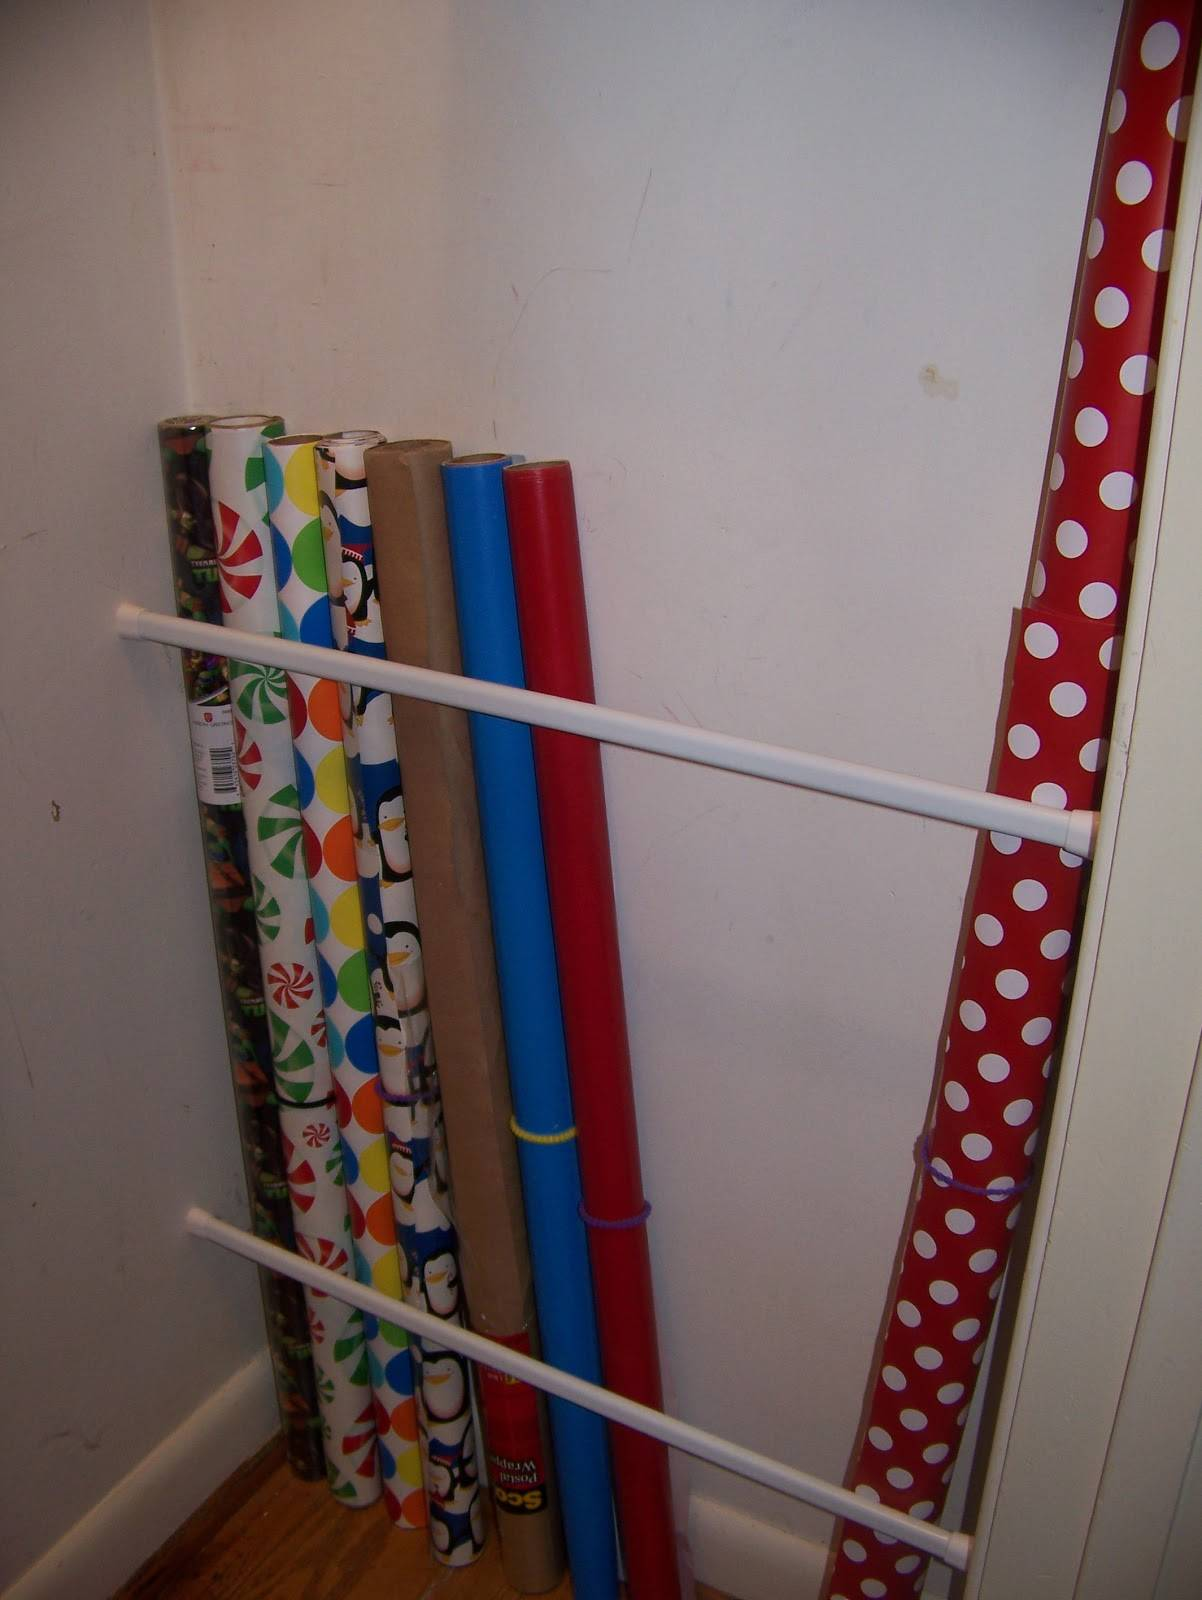 20+ Creative Uses of Tension Rods to Organize Your Home --> Use Tension Rod to Store Wrapping Paper Vertically and Keep Them Organized in the Closet